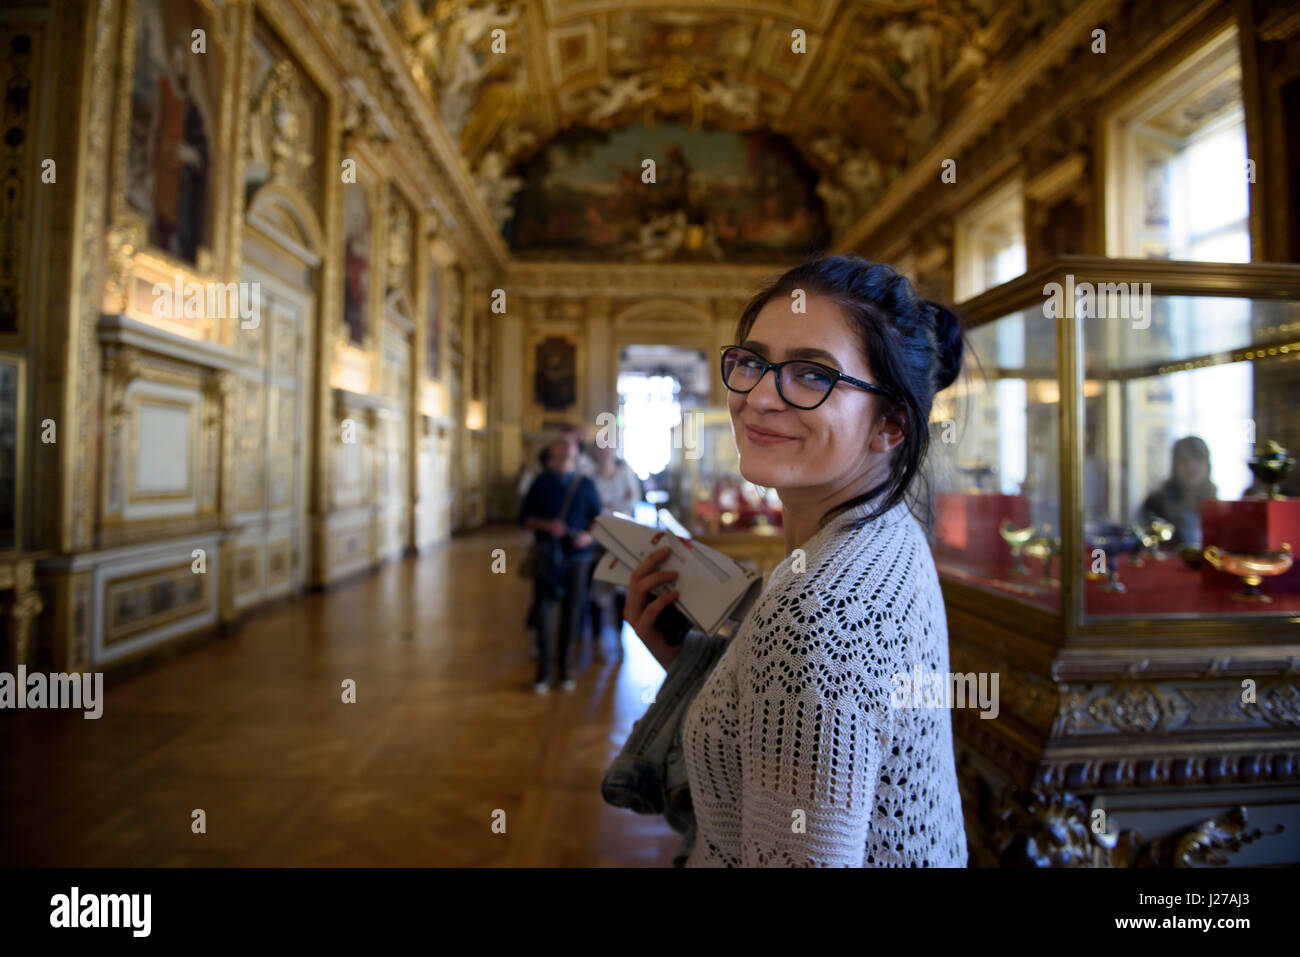 Young woman tourist is visiting the Apollo Gallery at the Louvre museum in Paris, France. - Stock Image